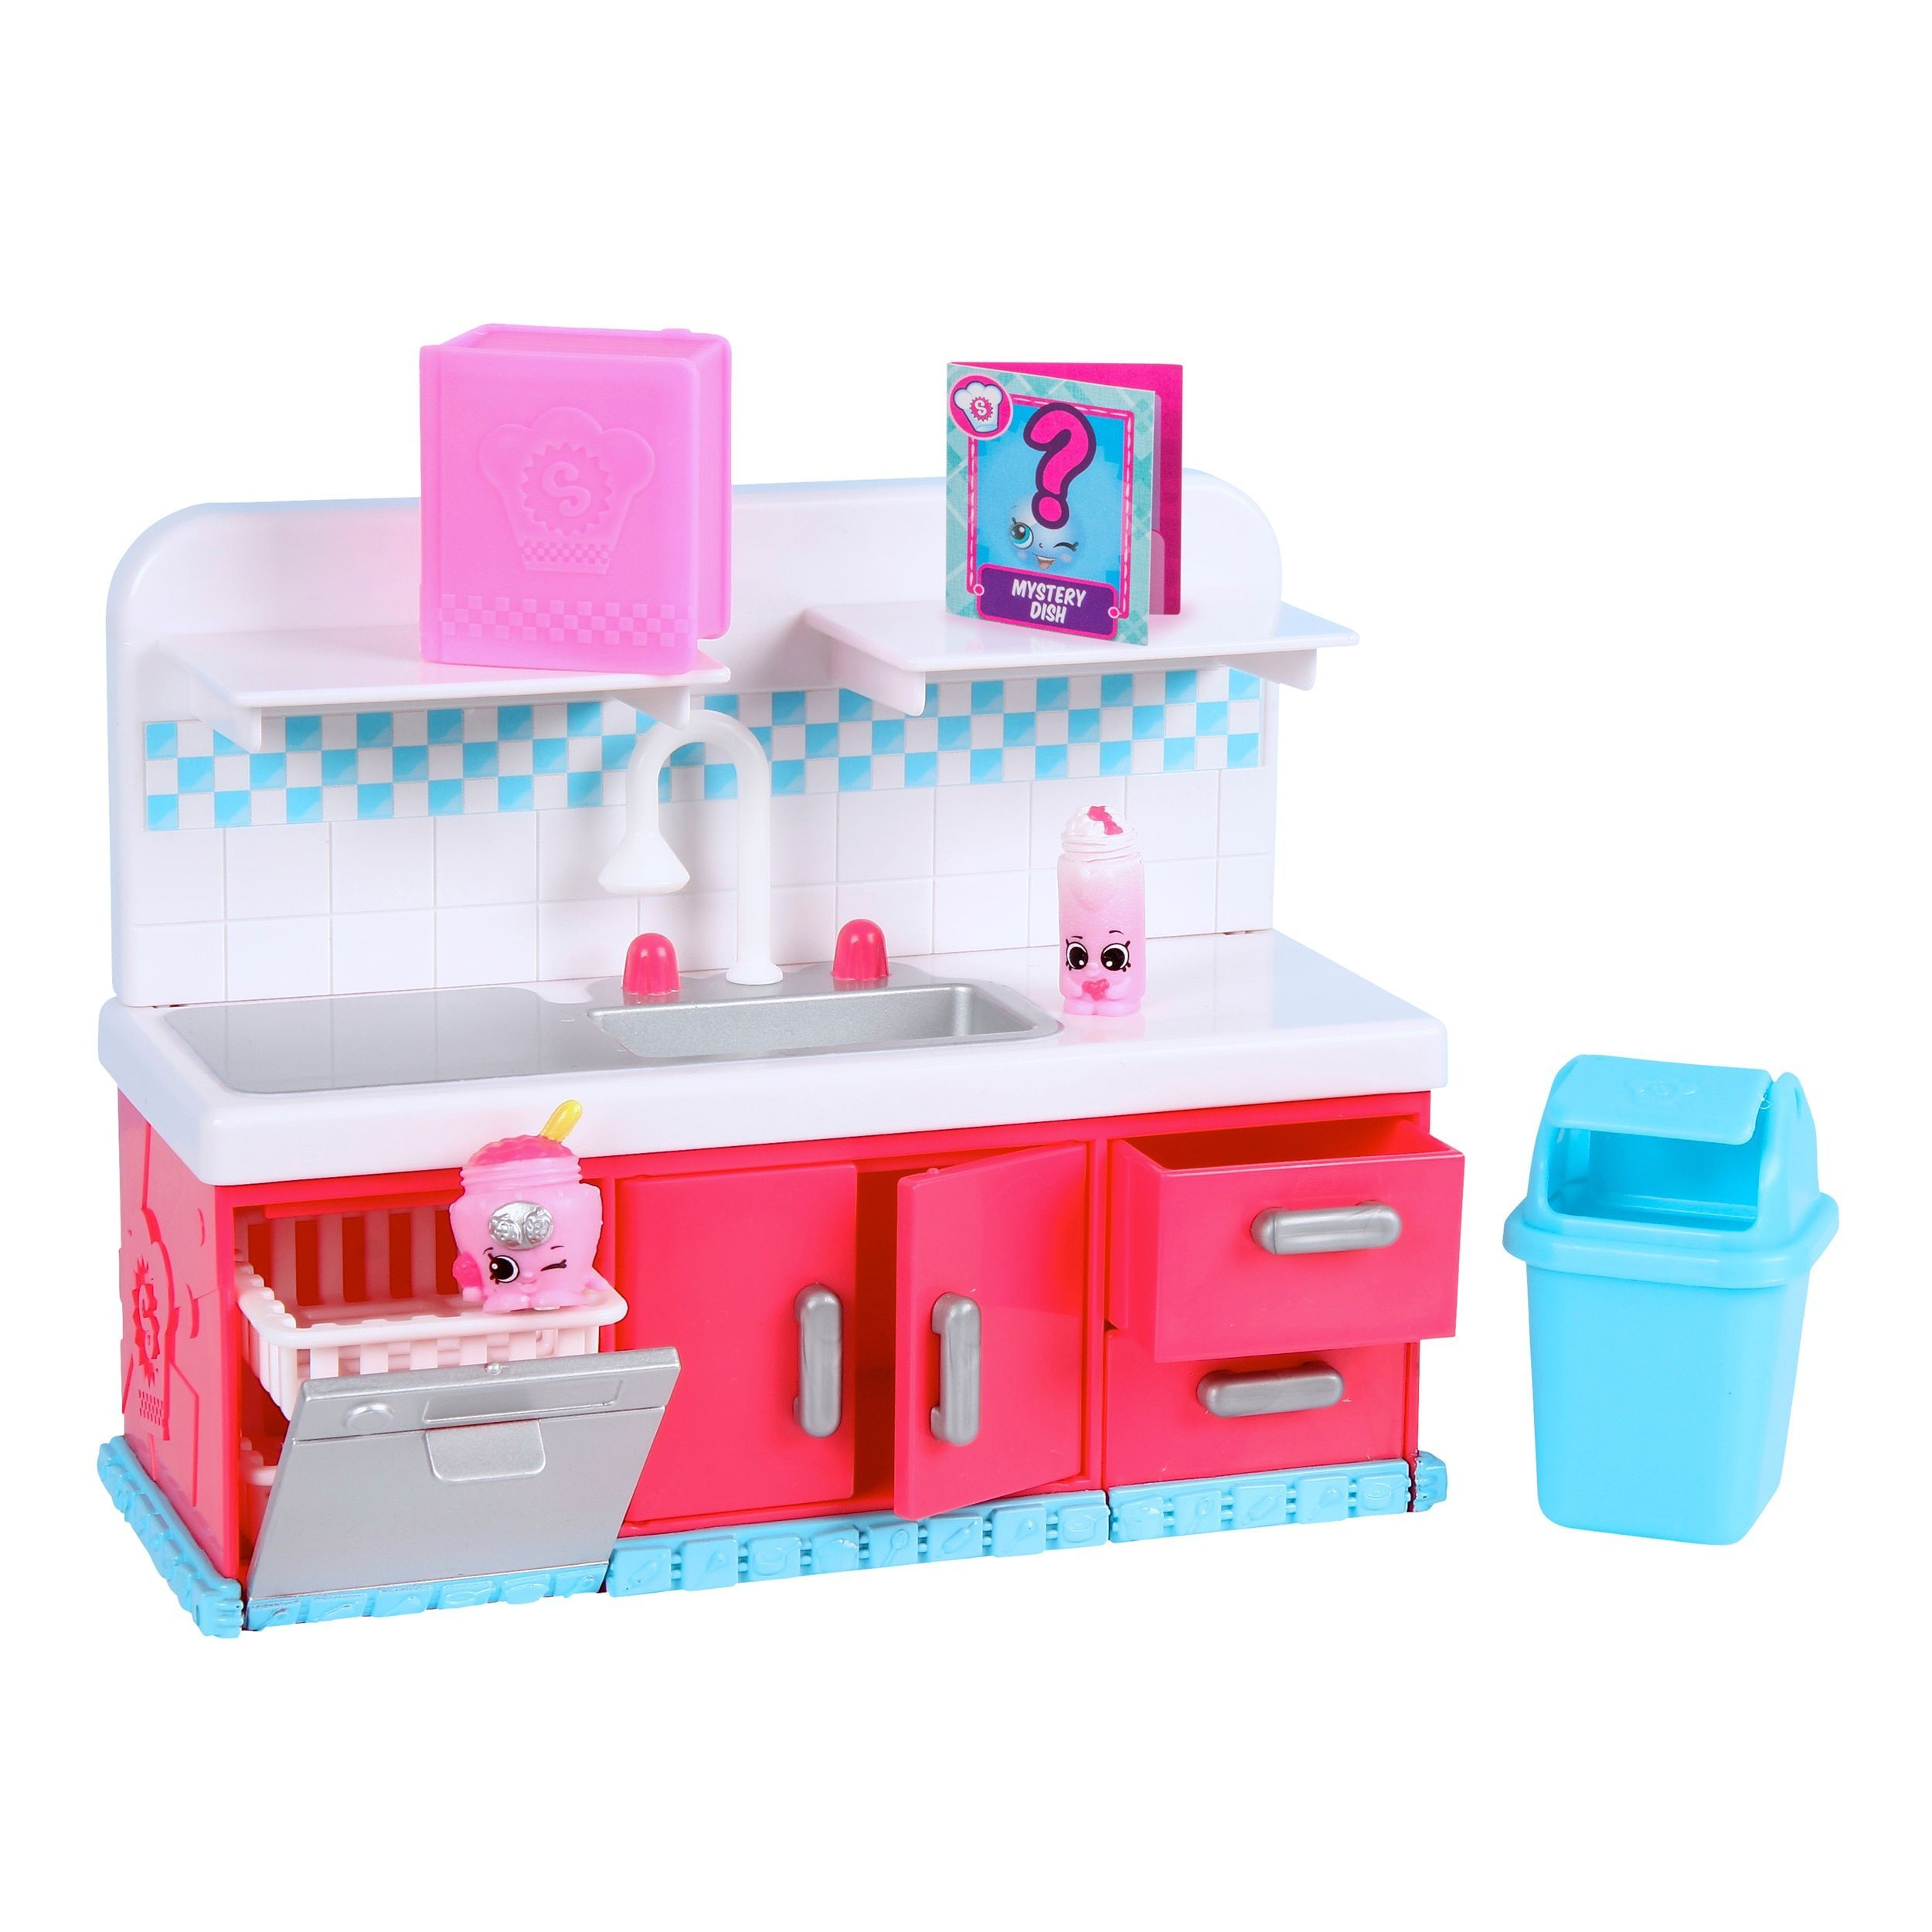 Shopkins Series 6 Sparkle Clean Washer Playset Birthday